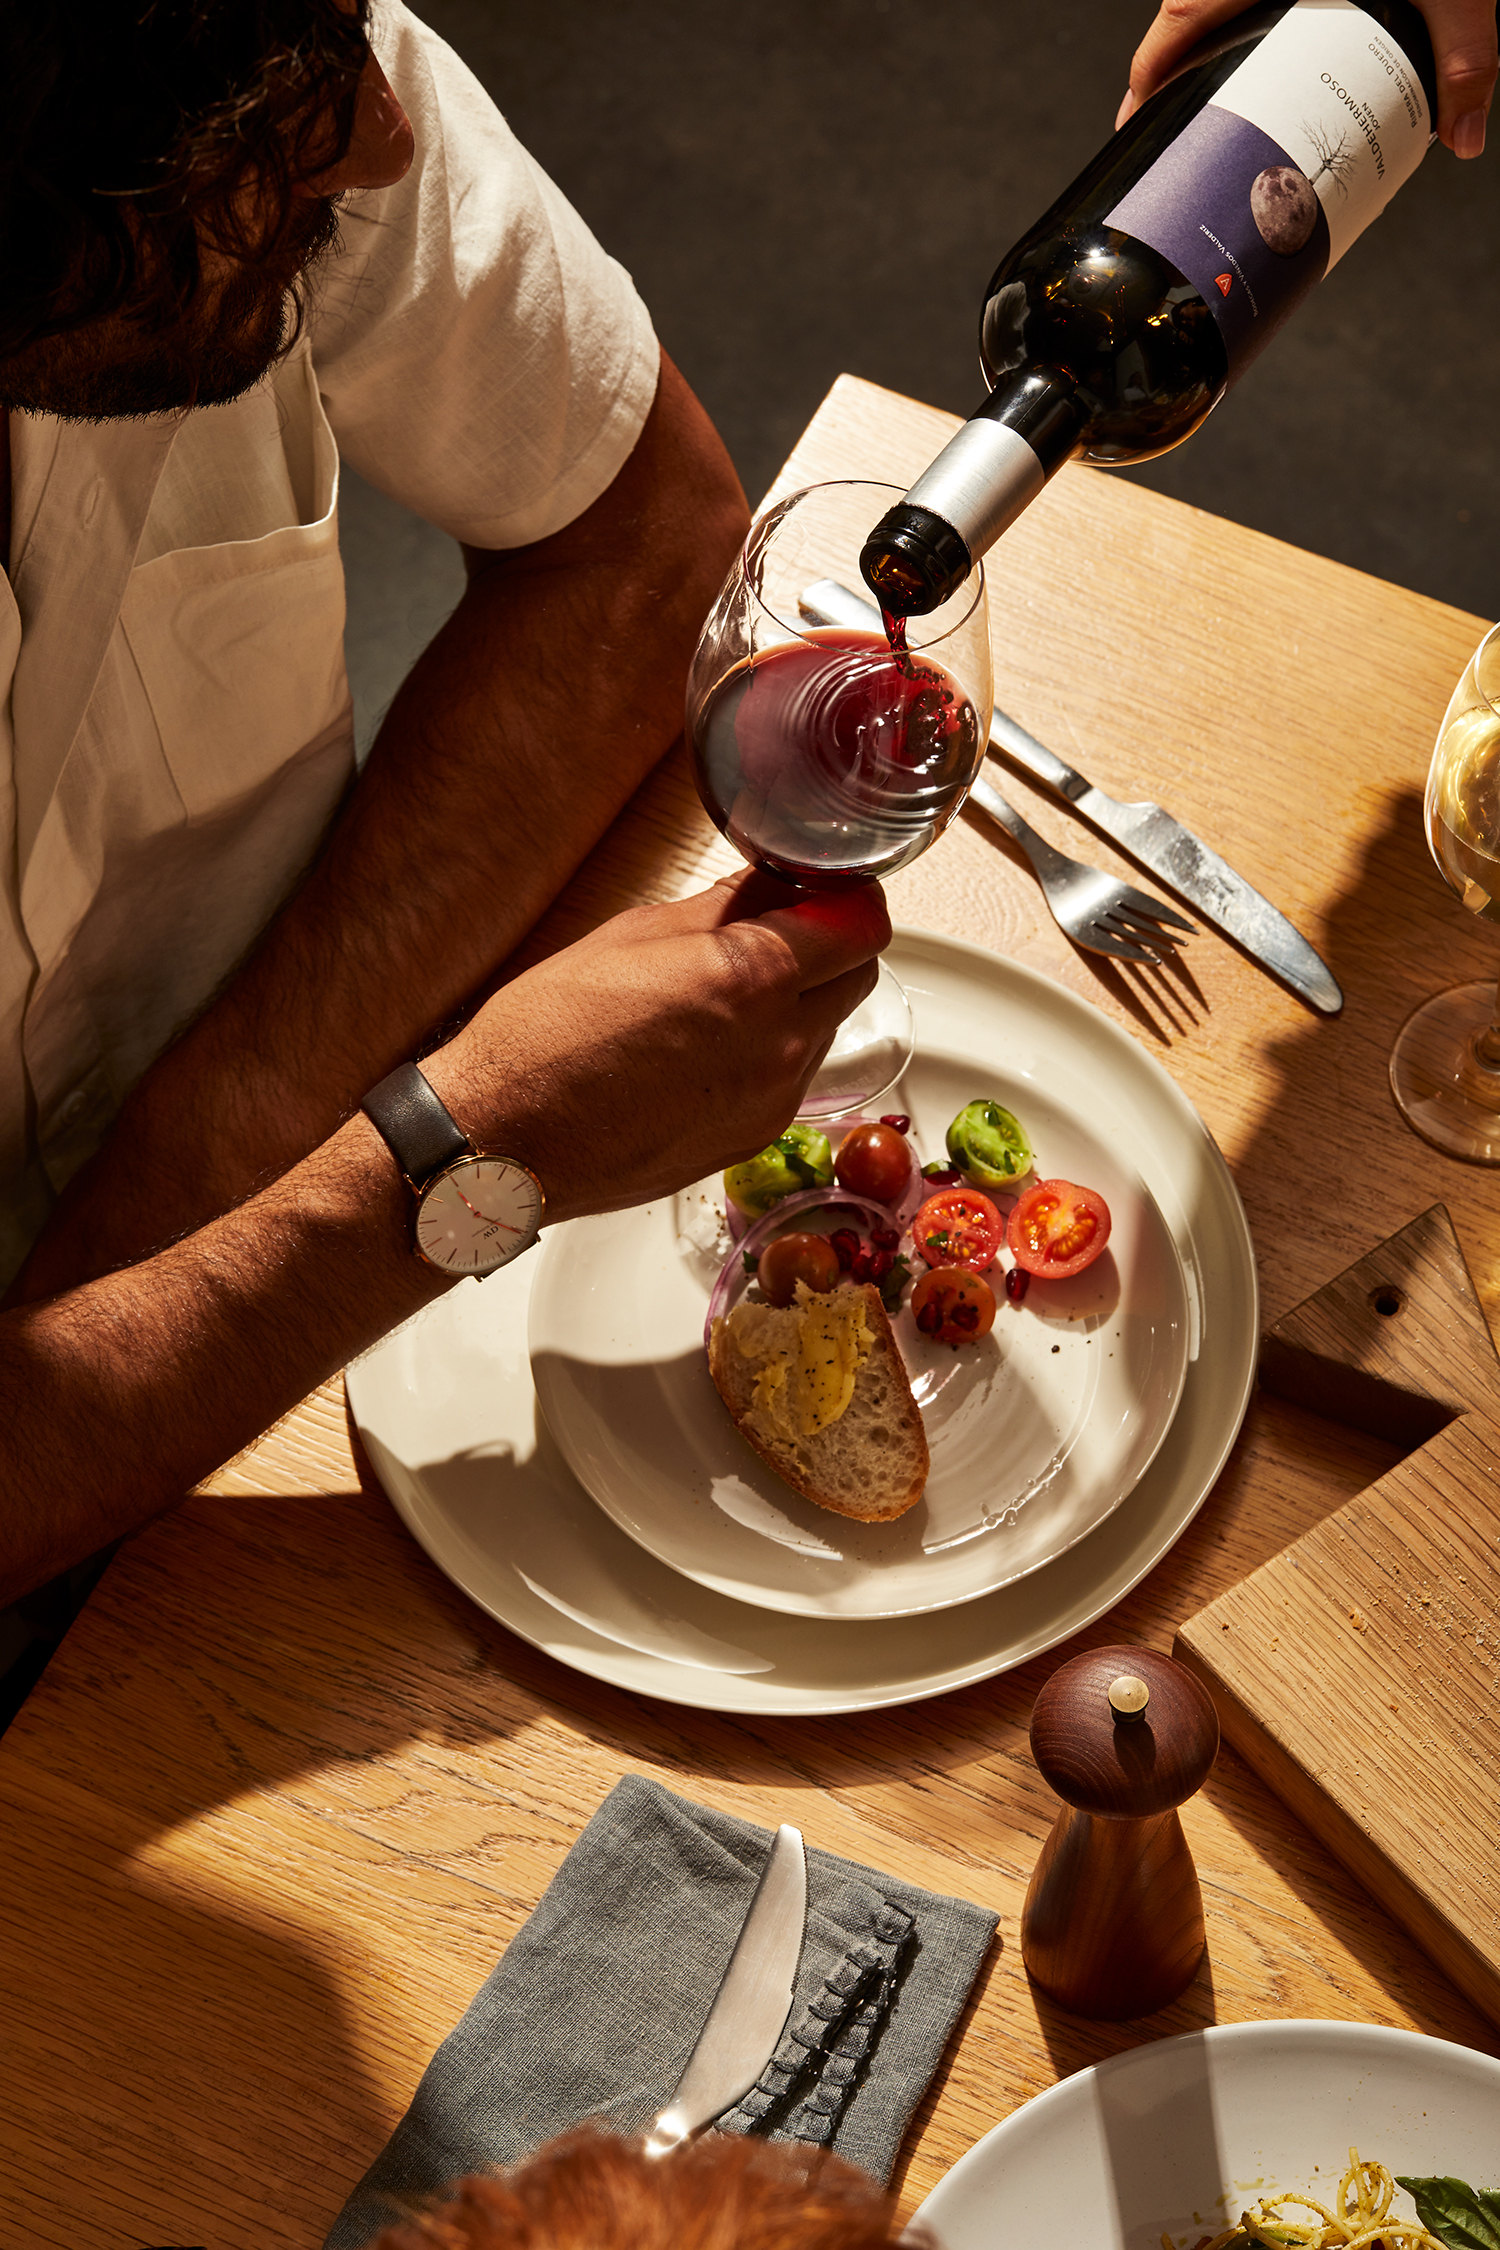 Good Pair Days Lifestyle shot by Sydney advertising food and lifestyle photographer Benito Martin